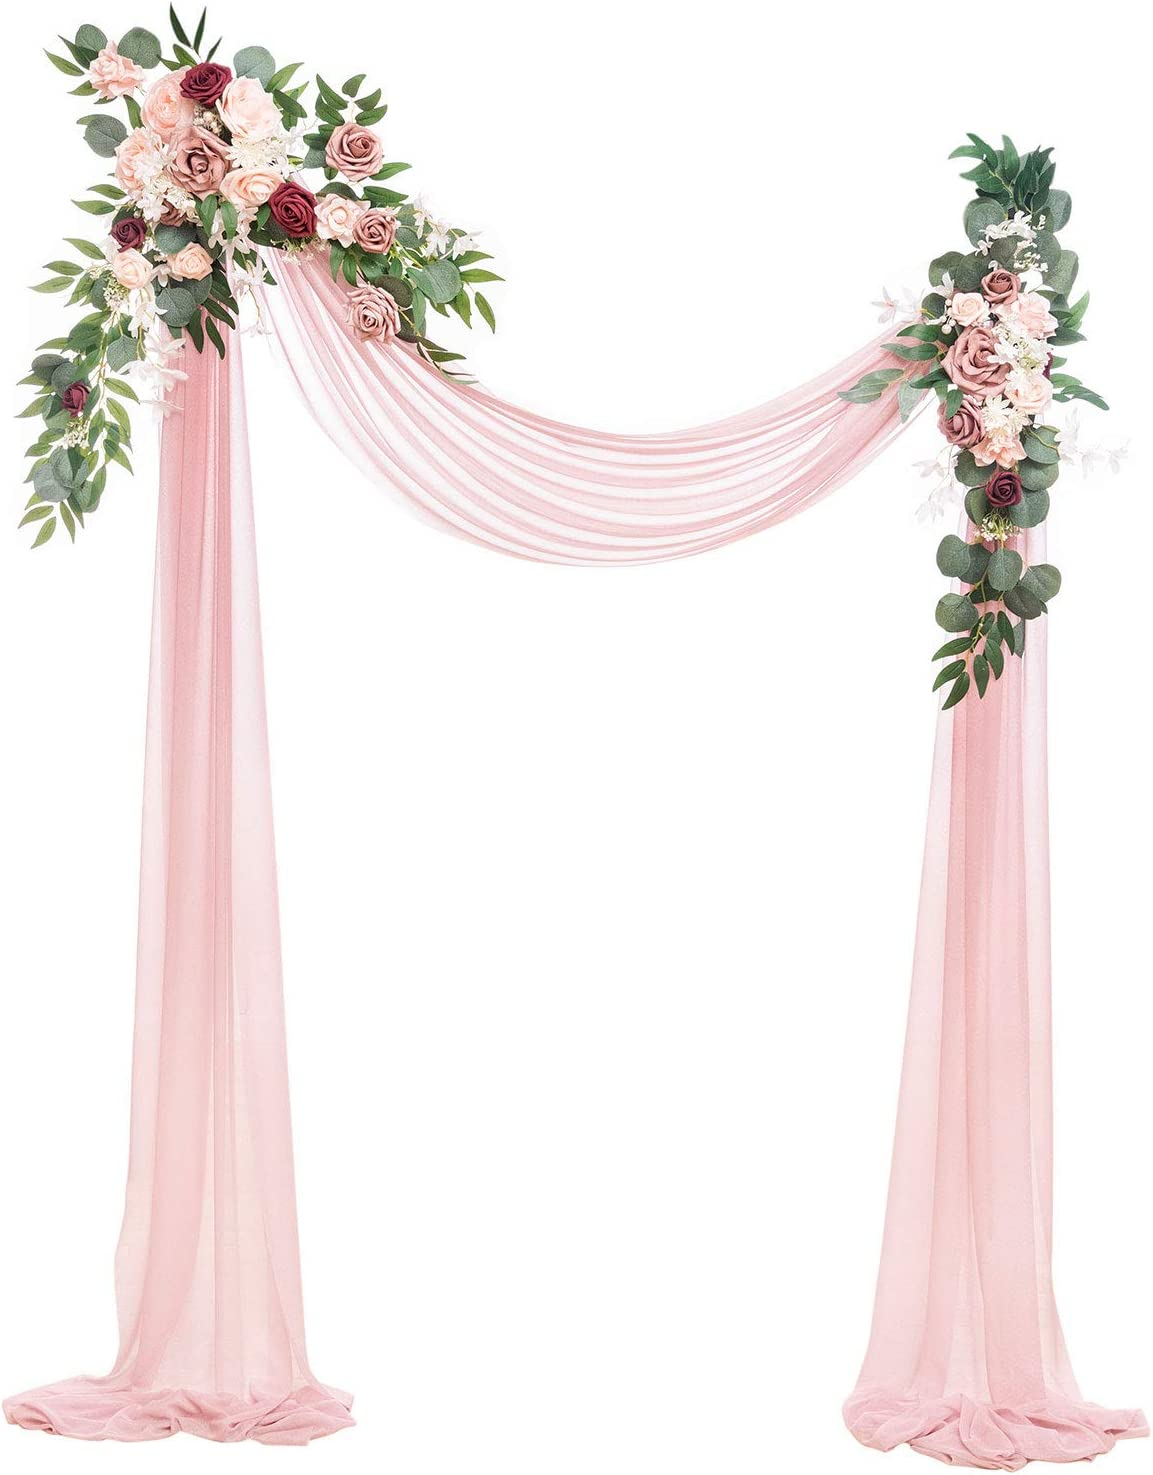 Ling's moment Artificial Wedding Arch Flowers Kit(Pack of 3) - 2pcs Burgundy & Dusty Rose Aobor Floral Arrangement with 1pc Semi-Sheer Swag for Ceremony and Reception Backdrop Decoration